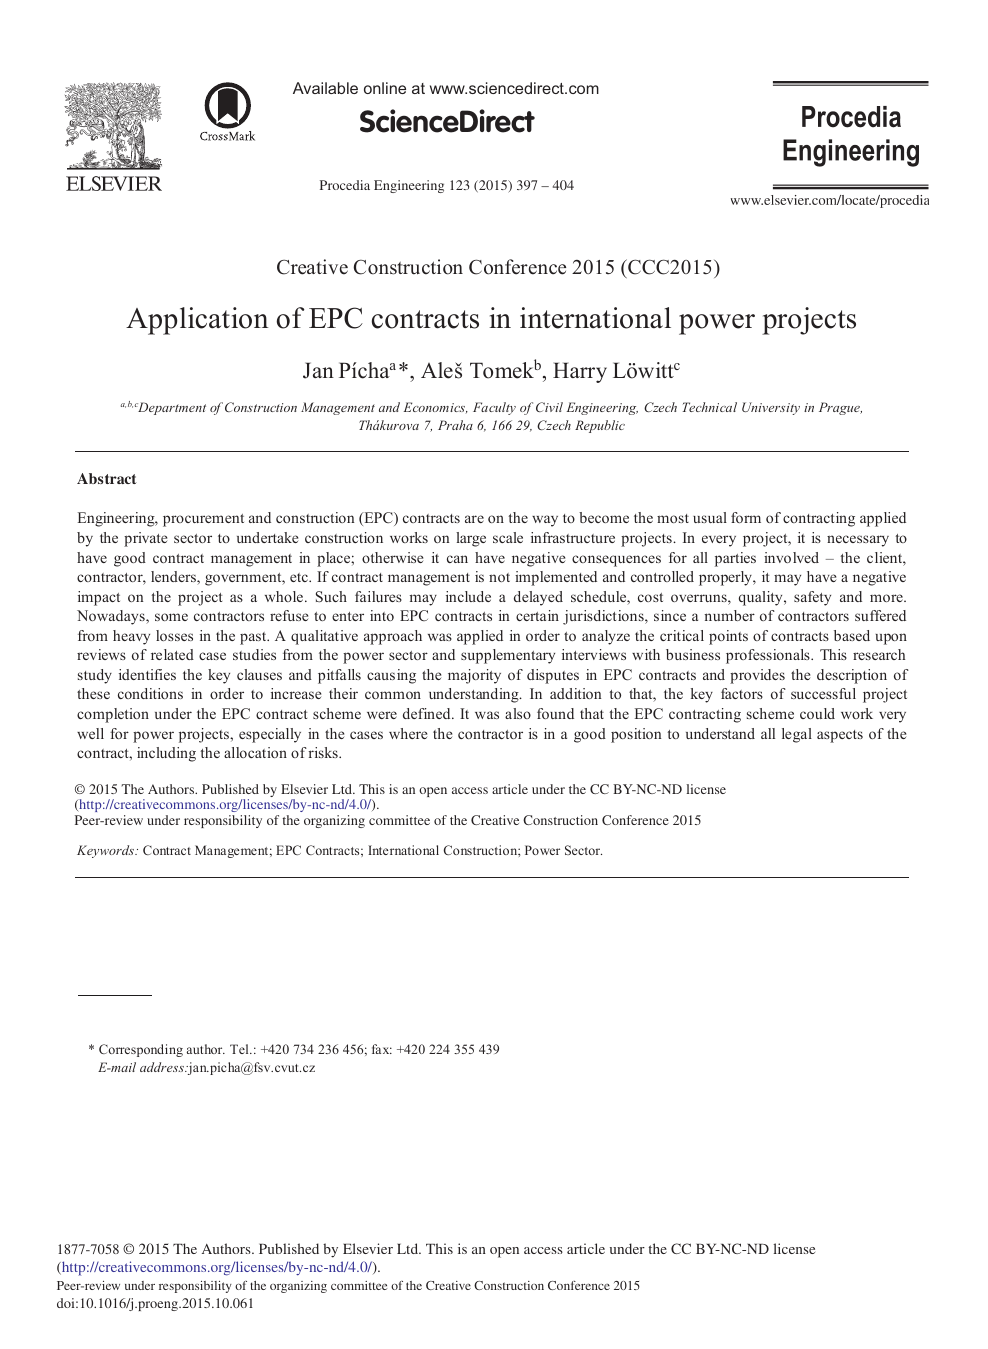 Application of EPC Contracts in International Power Projects